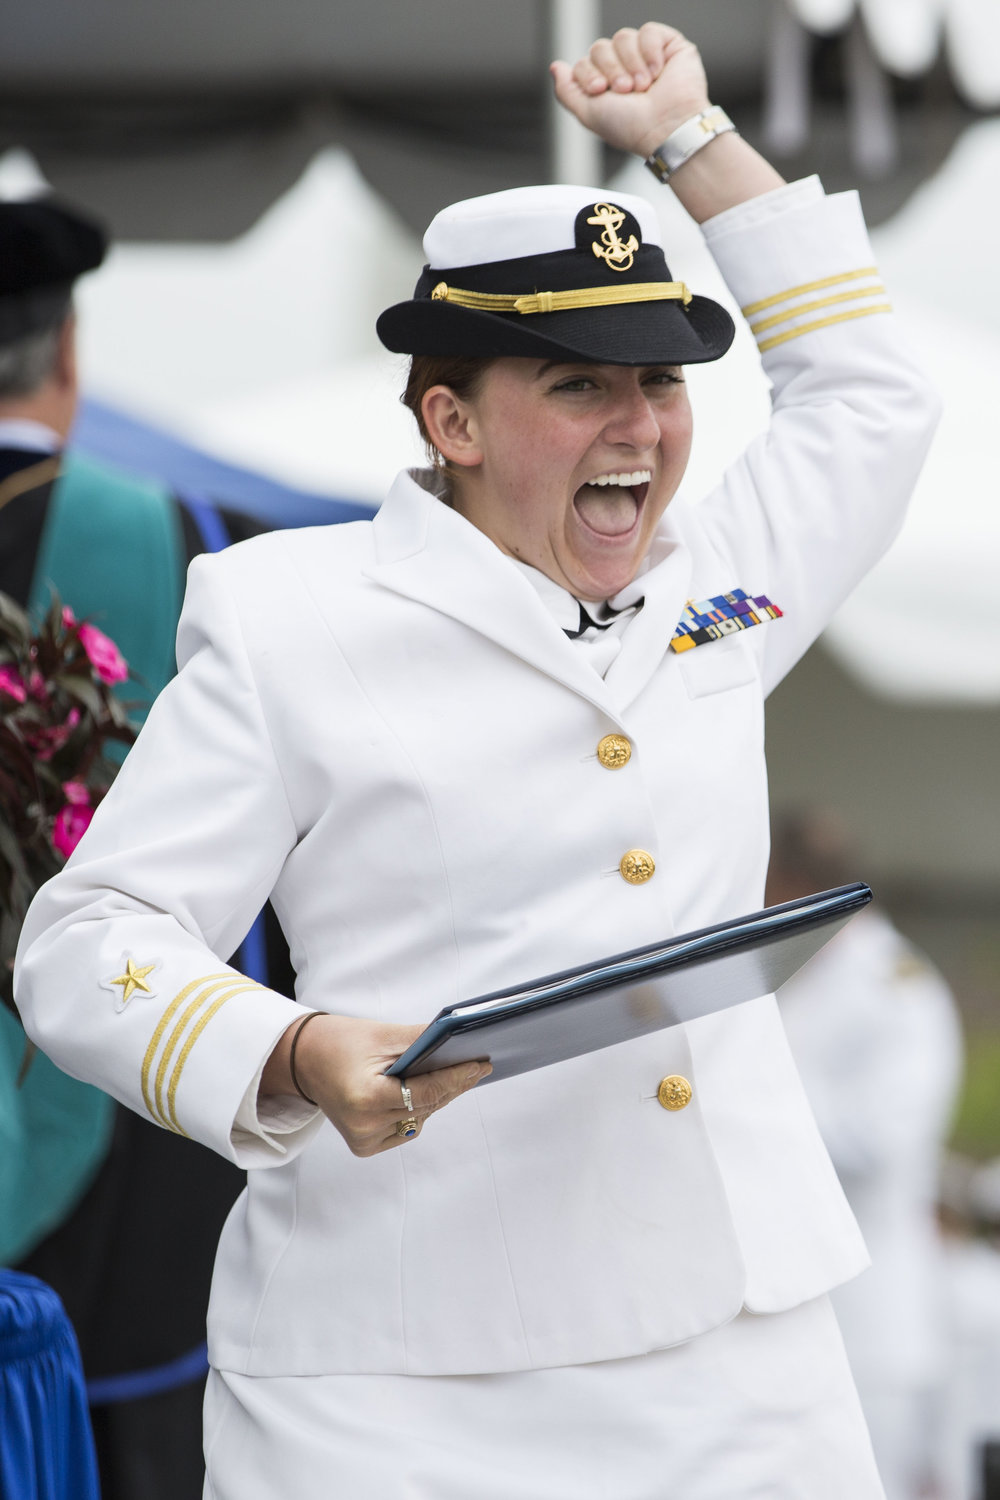 Natalie Lu celebrates after accepting her diploma during the Massachusetts Maritime Academy Commencement ceremony on June 17, 2017.